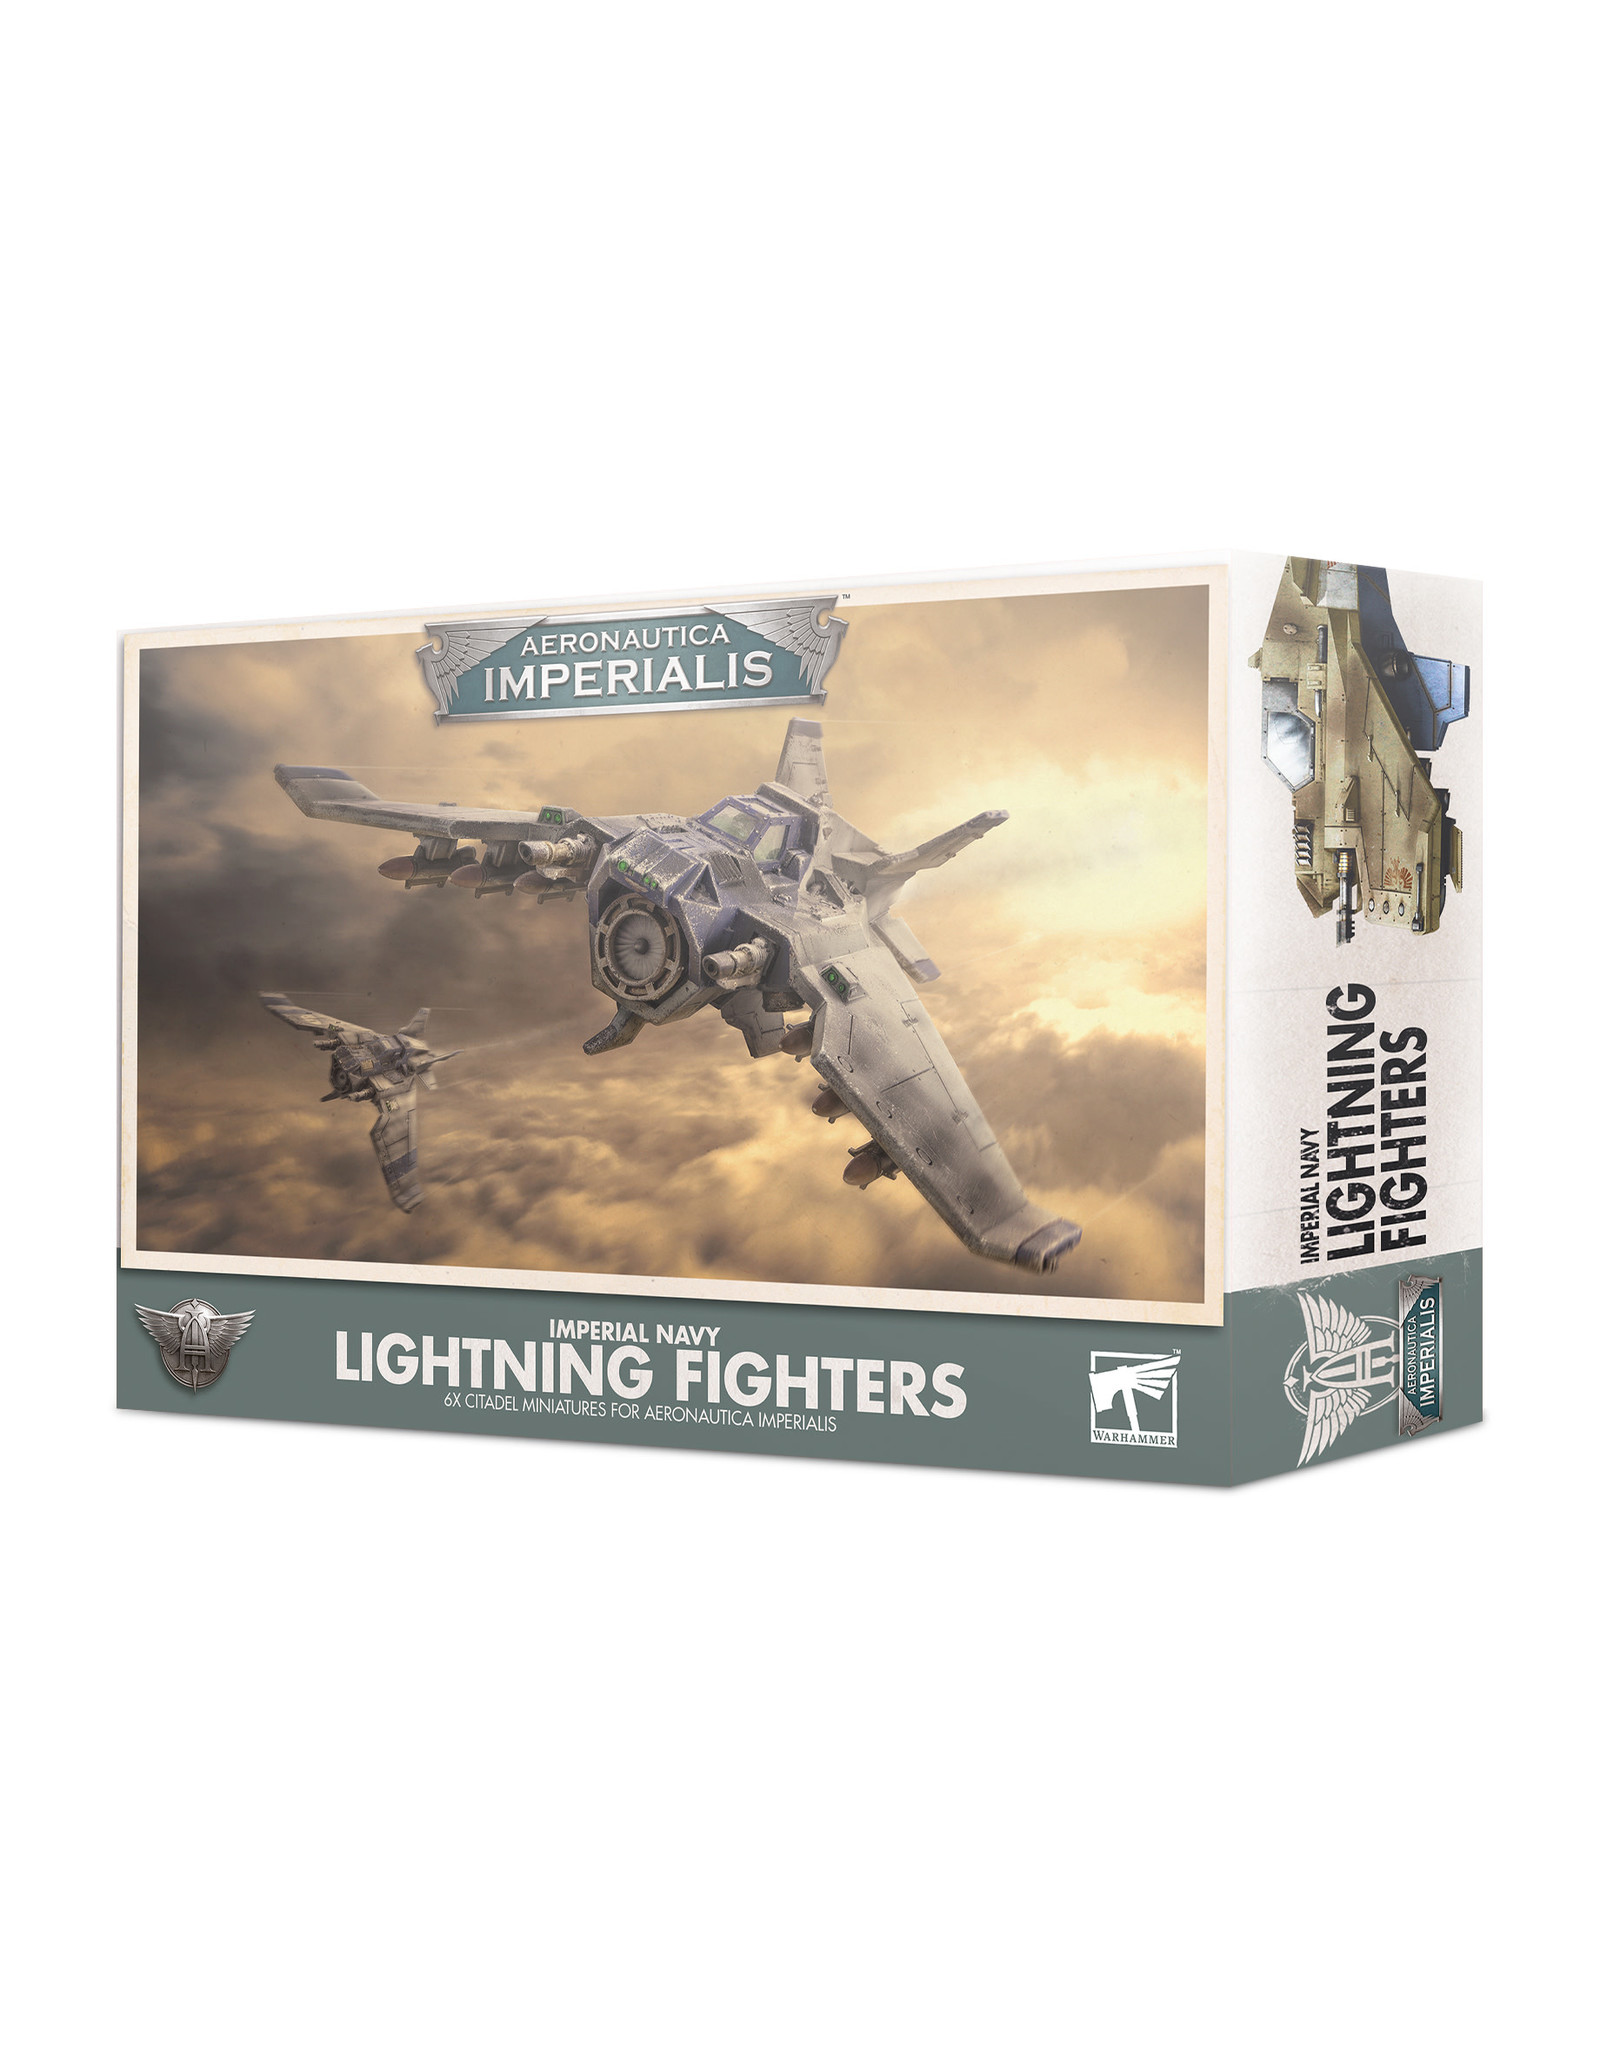 Games Workshop Aeronautica Imperialis: Imperial Navy Lightning Fighters